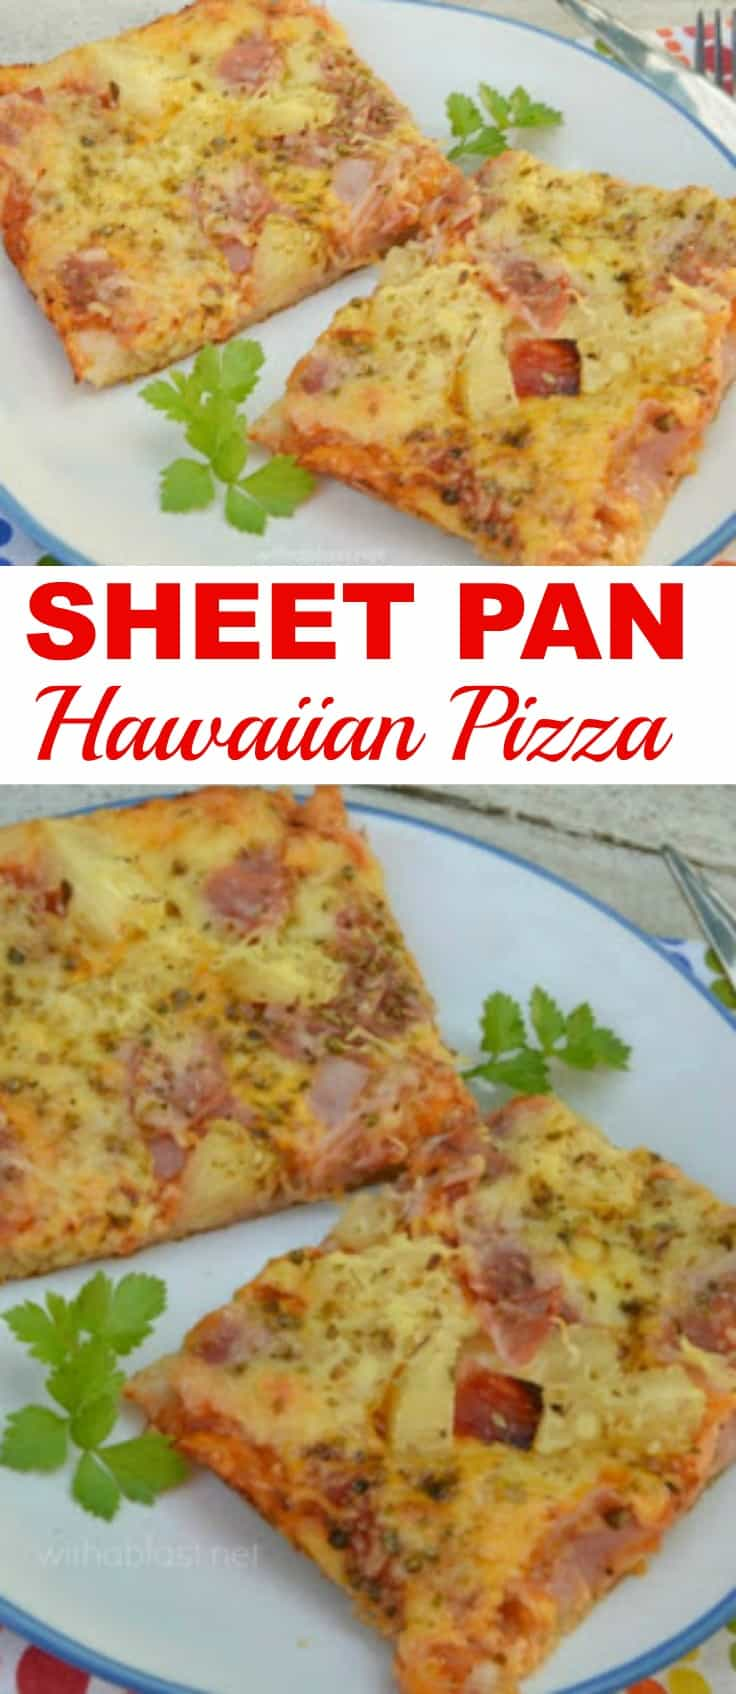 Sheet Pan Hawaiian Pizza